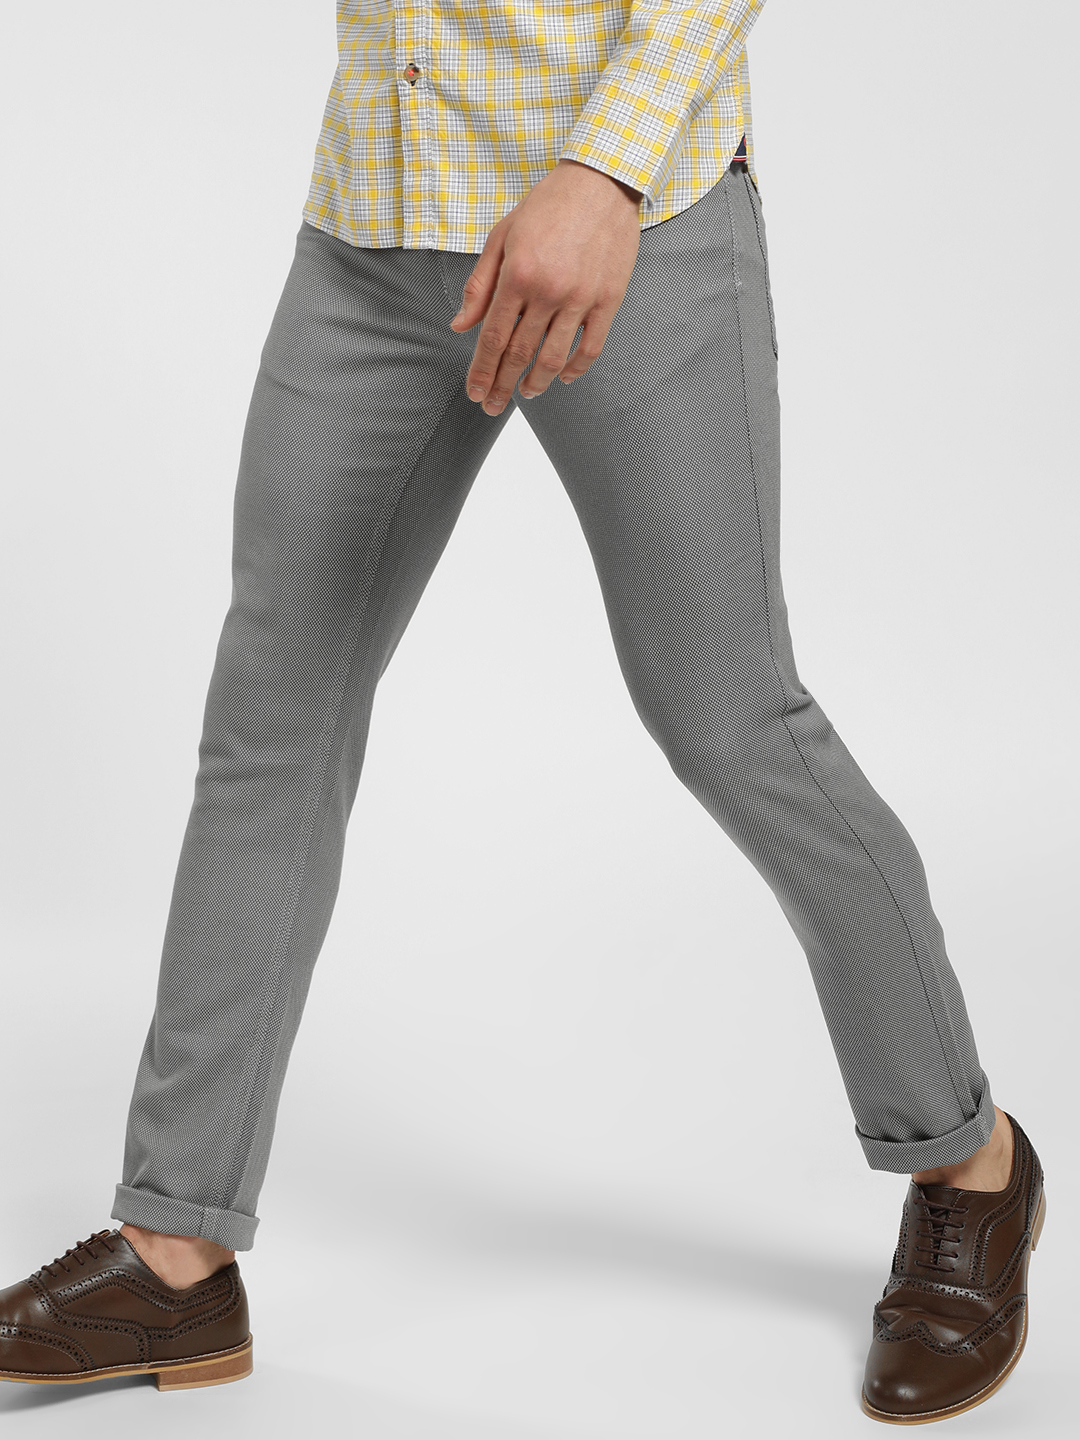 SCULLERS Grey Textured Slim Fit Trousers 1